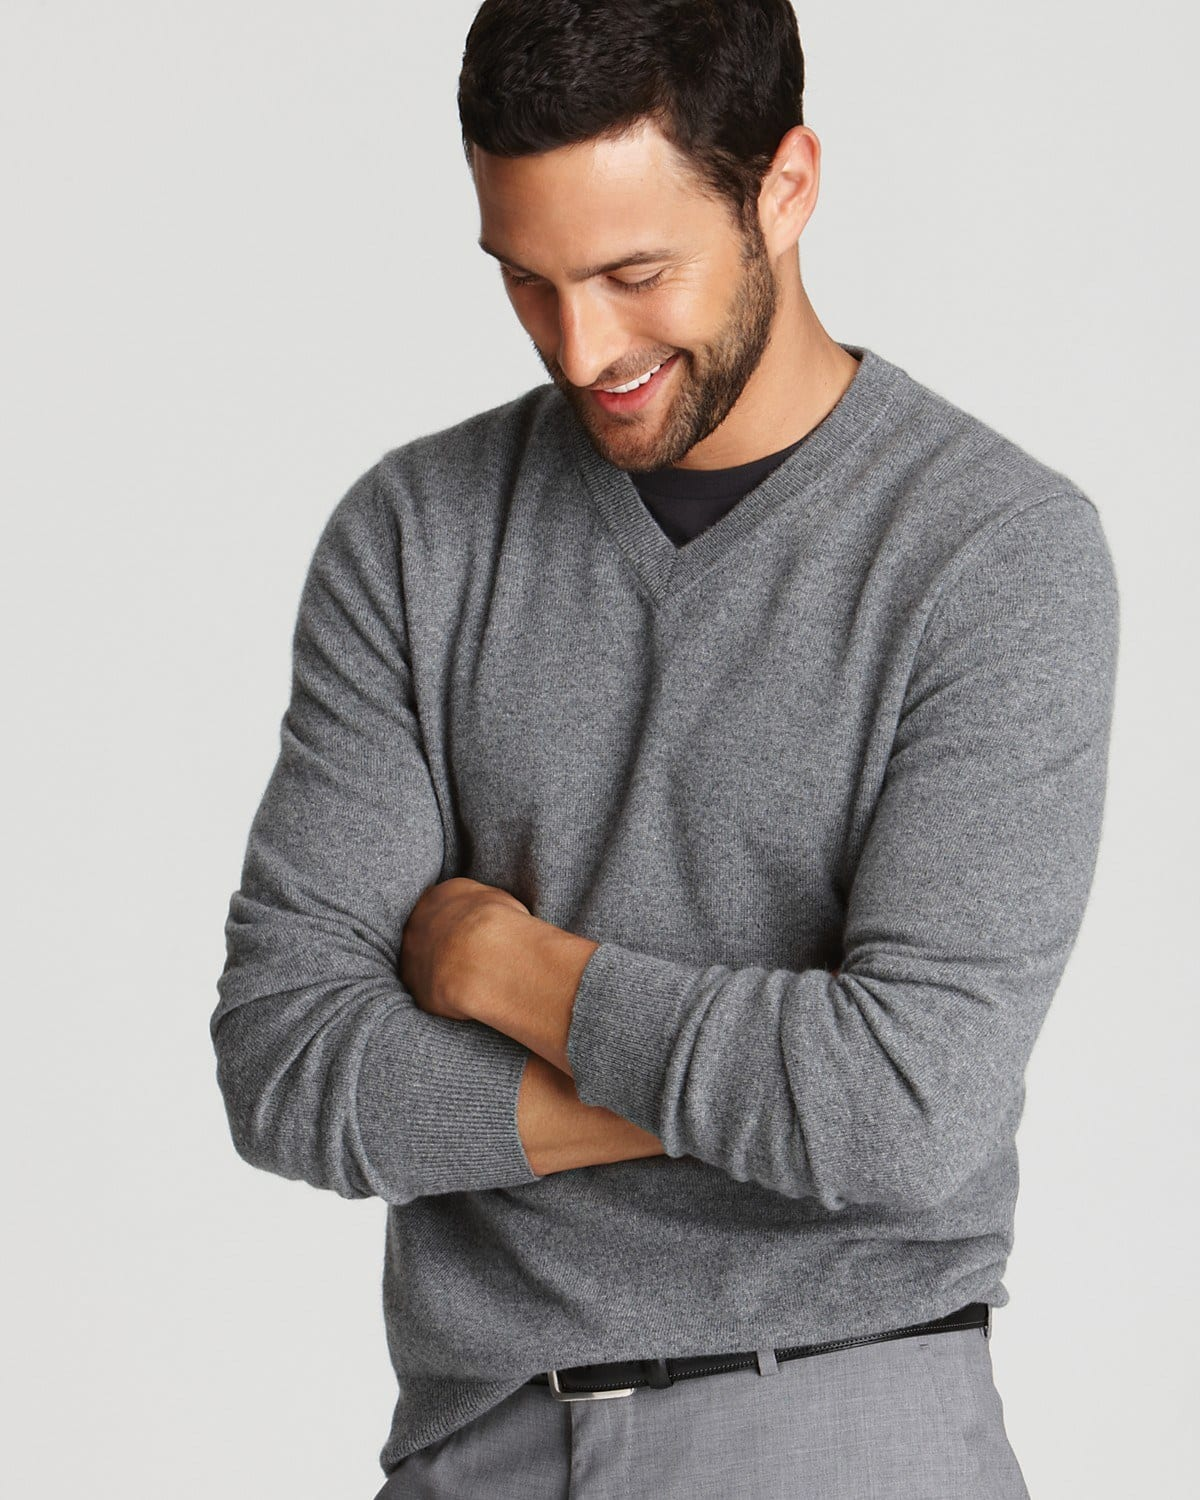 cashmere Sweater outfits for men – 17 Ways to Wear Sweaters Fashionably